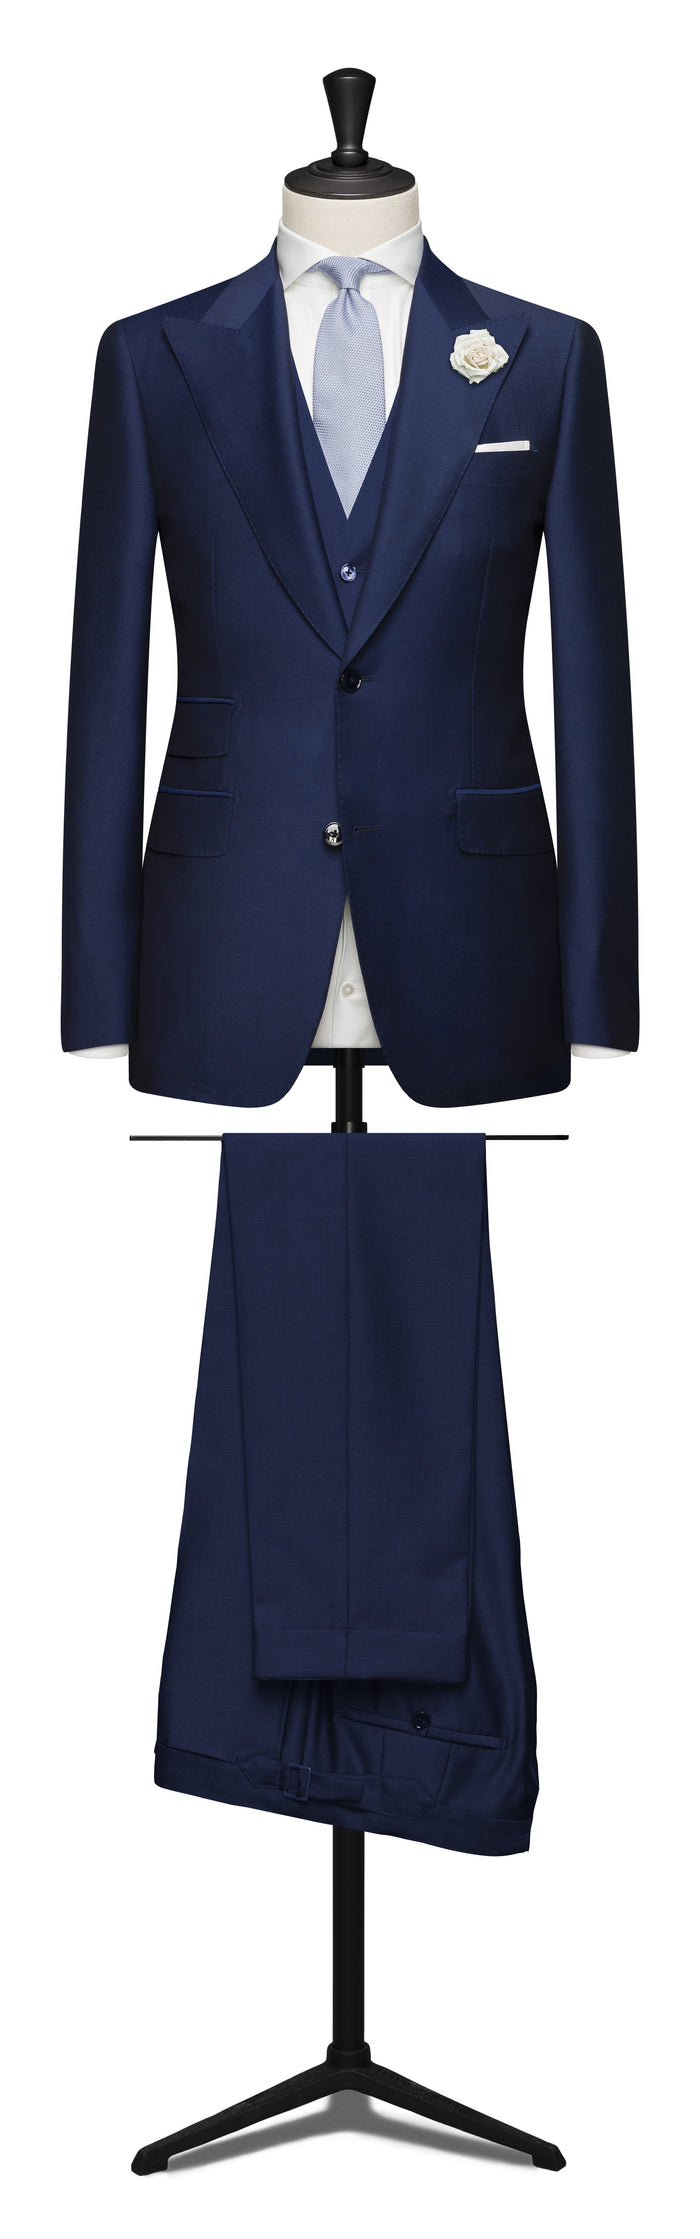 3-PIECE NAEPOLITAN BLUE WEDDING SUIT